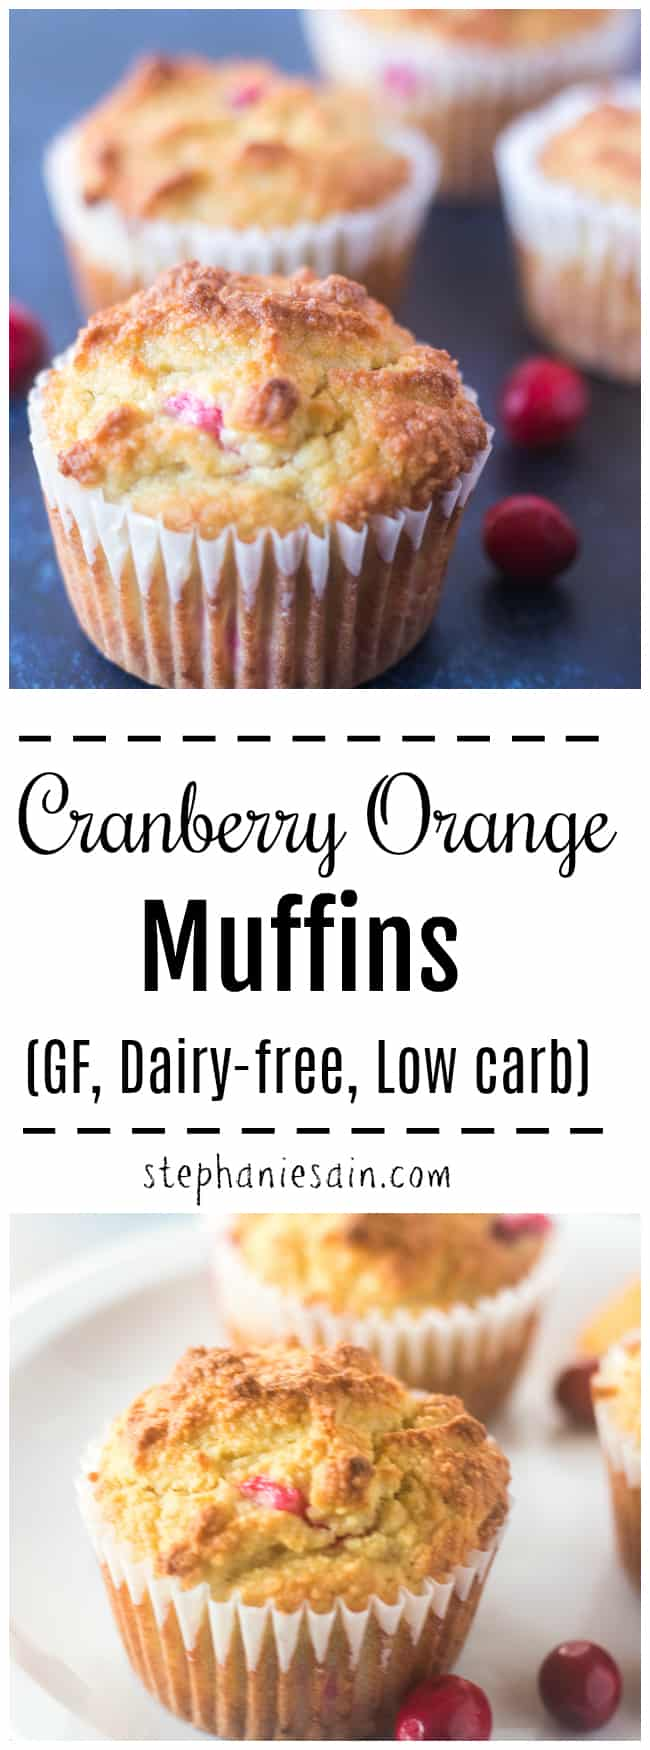 These Cranberry Orange Muffins are moist, tender and bursting with fresh tart cranberries. Lightly sweetened with maple syrup and orange juice. Perfect for quick healthy breakfast or snacks. Gluten Free, Dairy free, No added refined sugars and low carb.